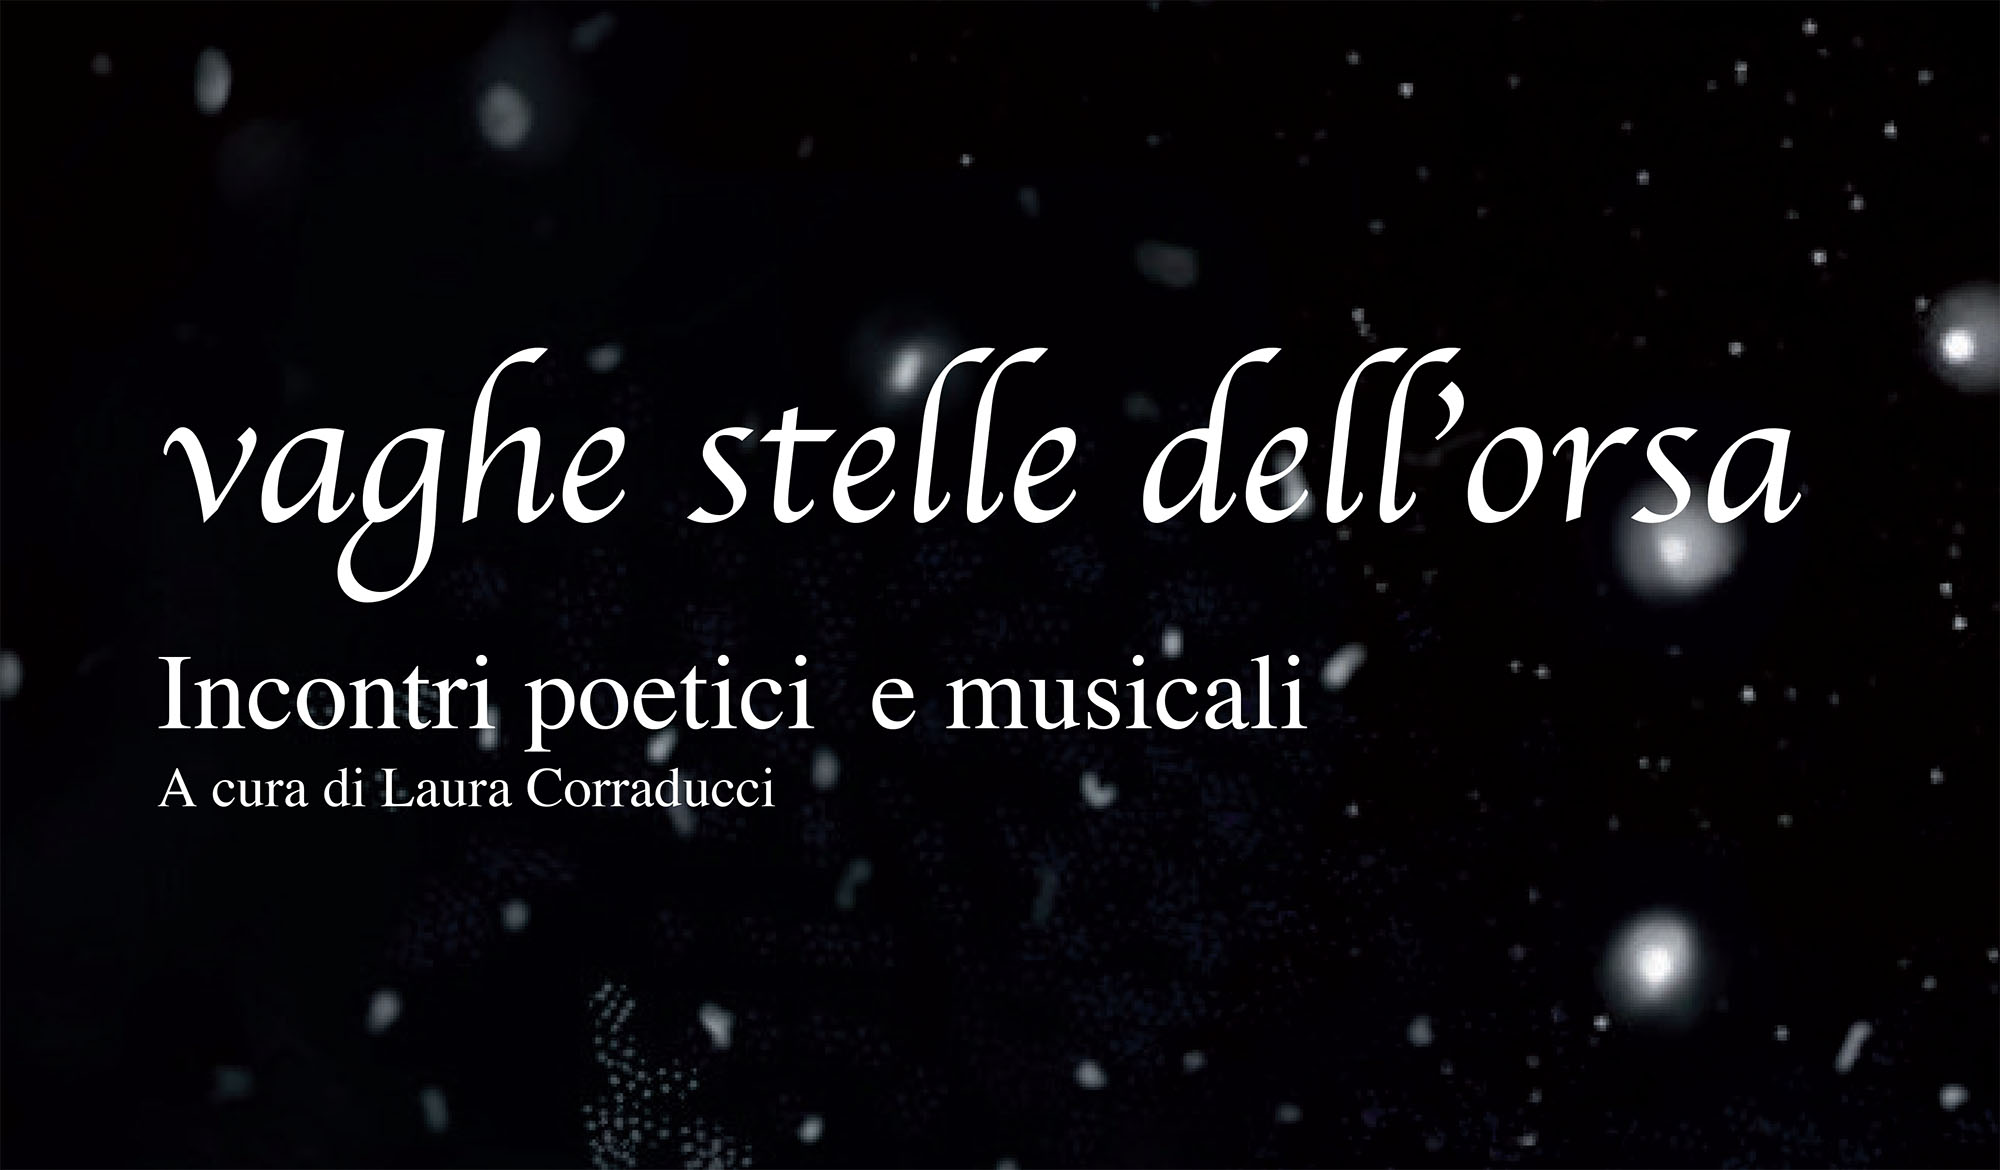 Vaghe stelle dell'orsa 2019 - poesia a Palazzo Mosca